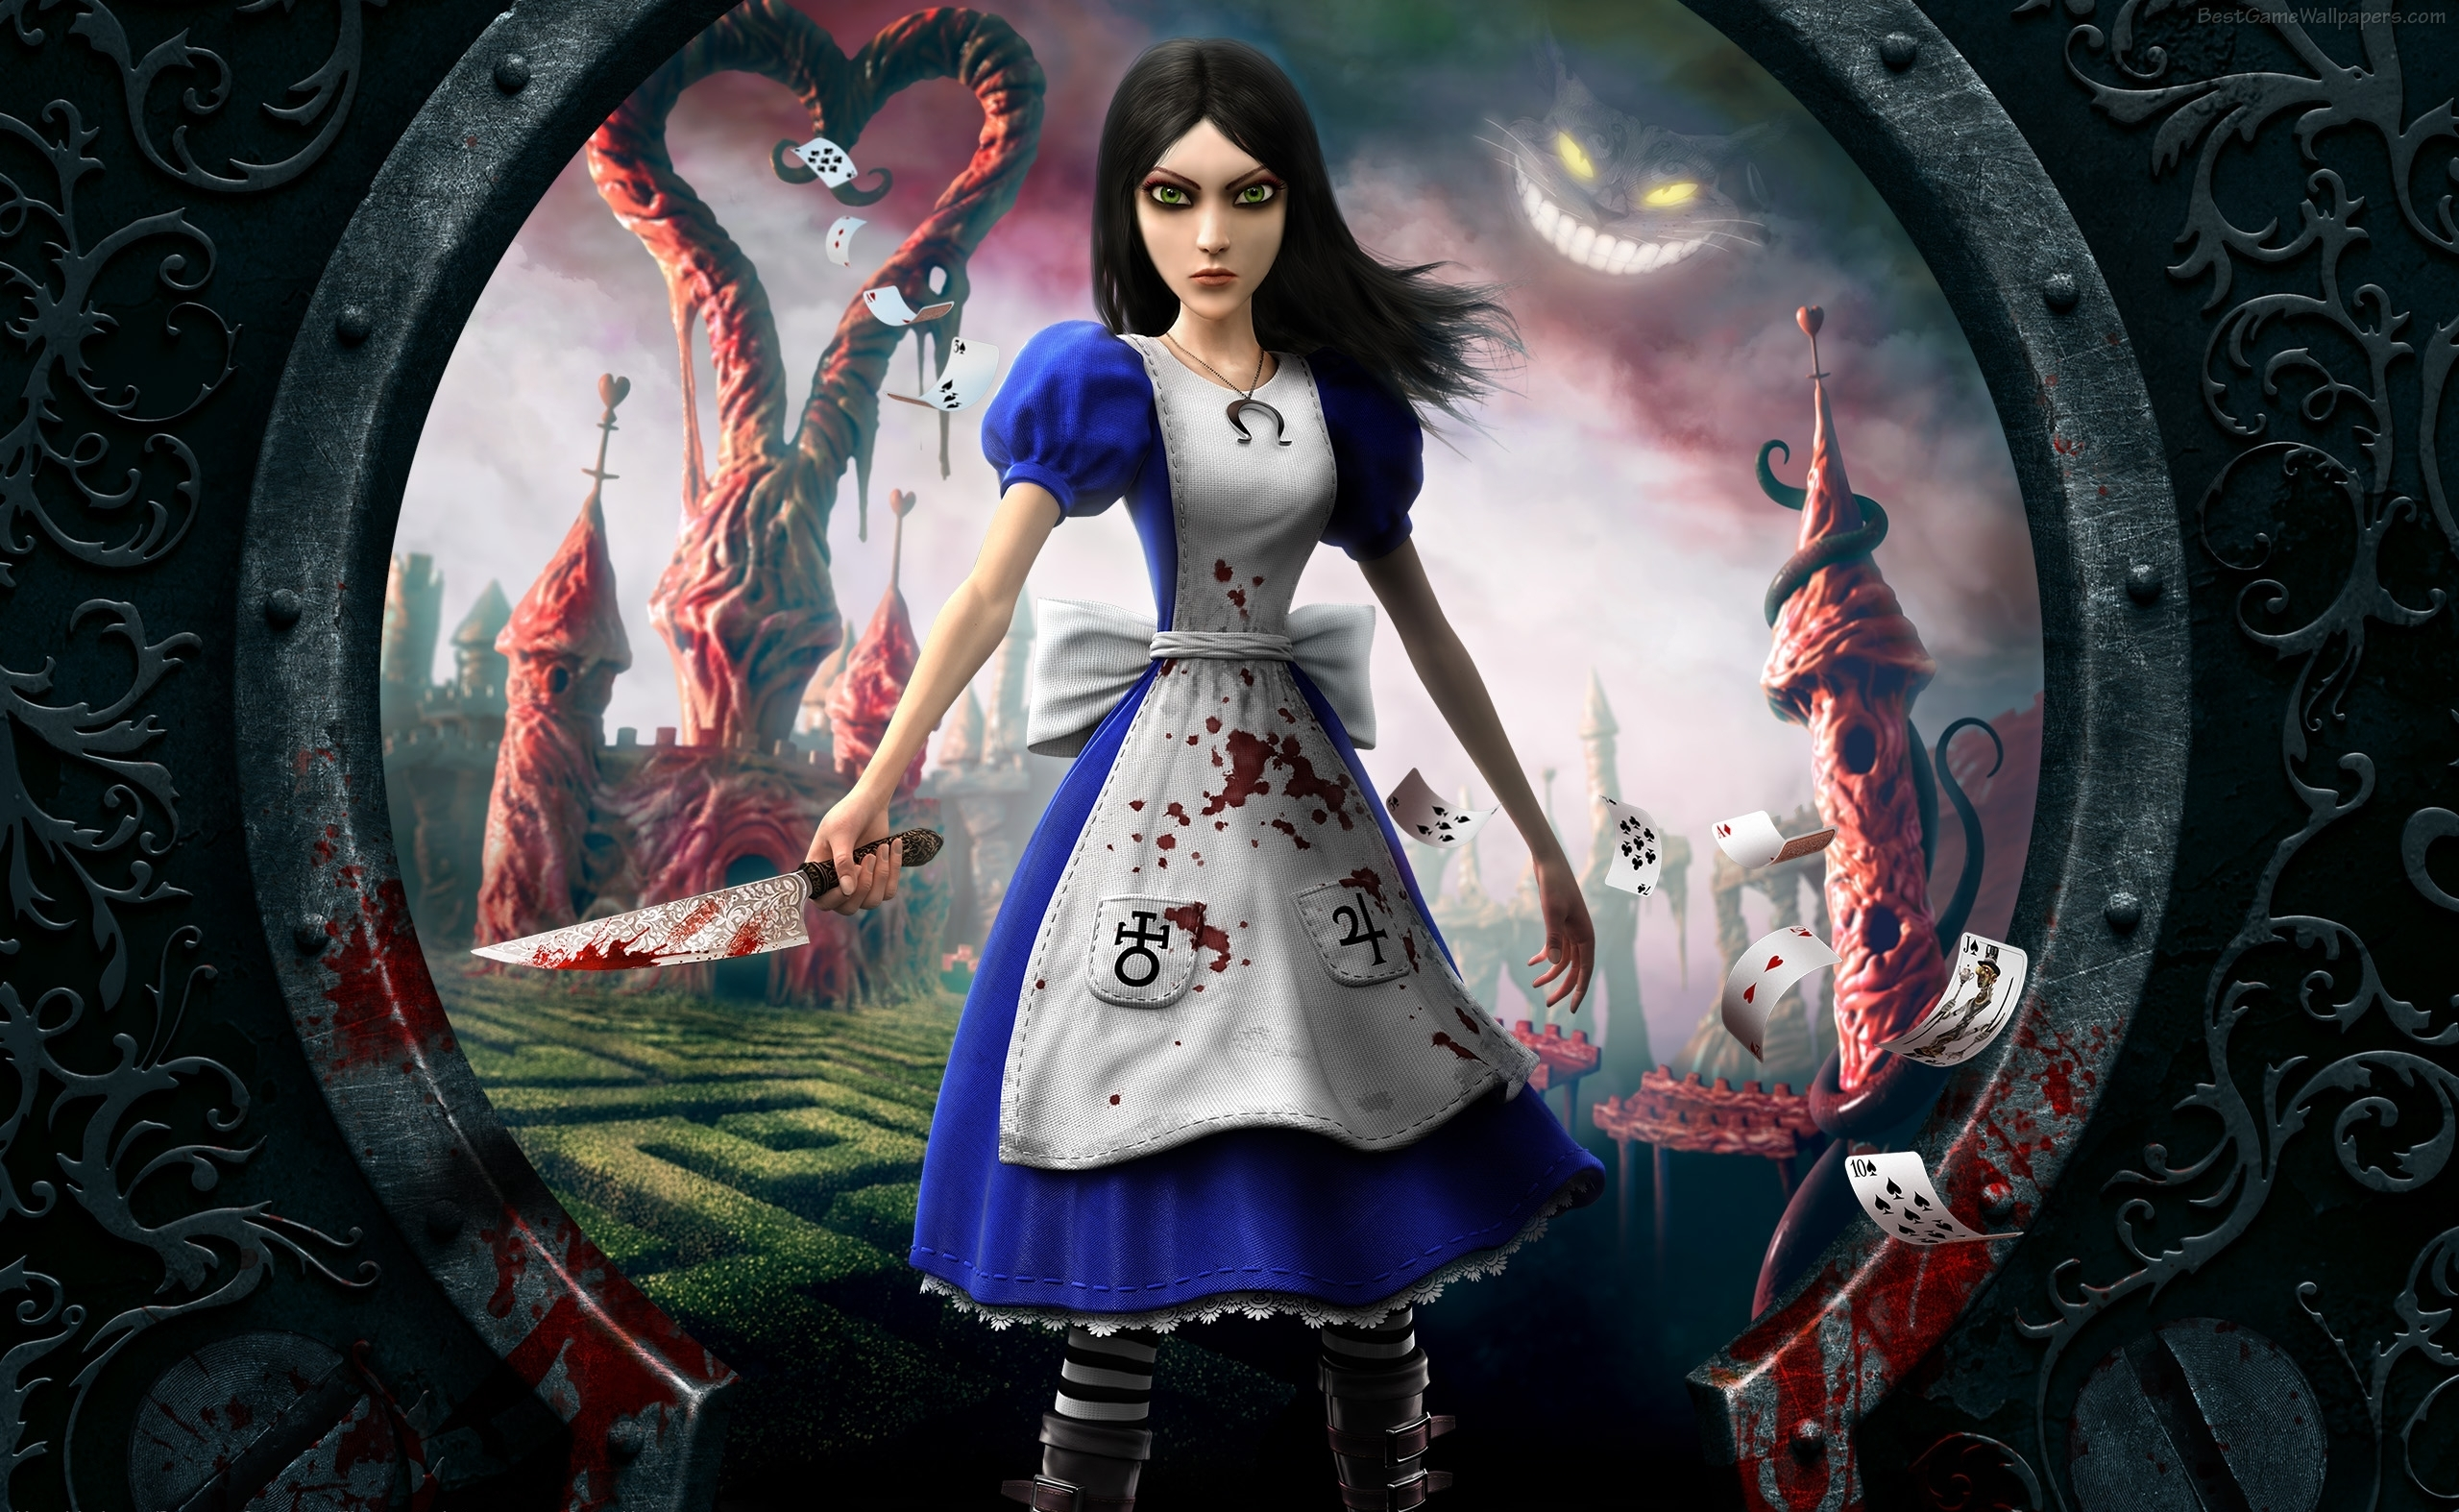 an analysis of madness in alice in wonderland Alice's adventures in wonderland chapter 6 table summary and analysis chapter 6 not surprised at the cat's vanishing does indicate a kind of madness on.